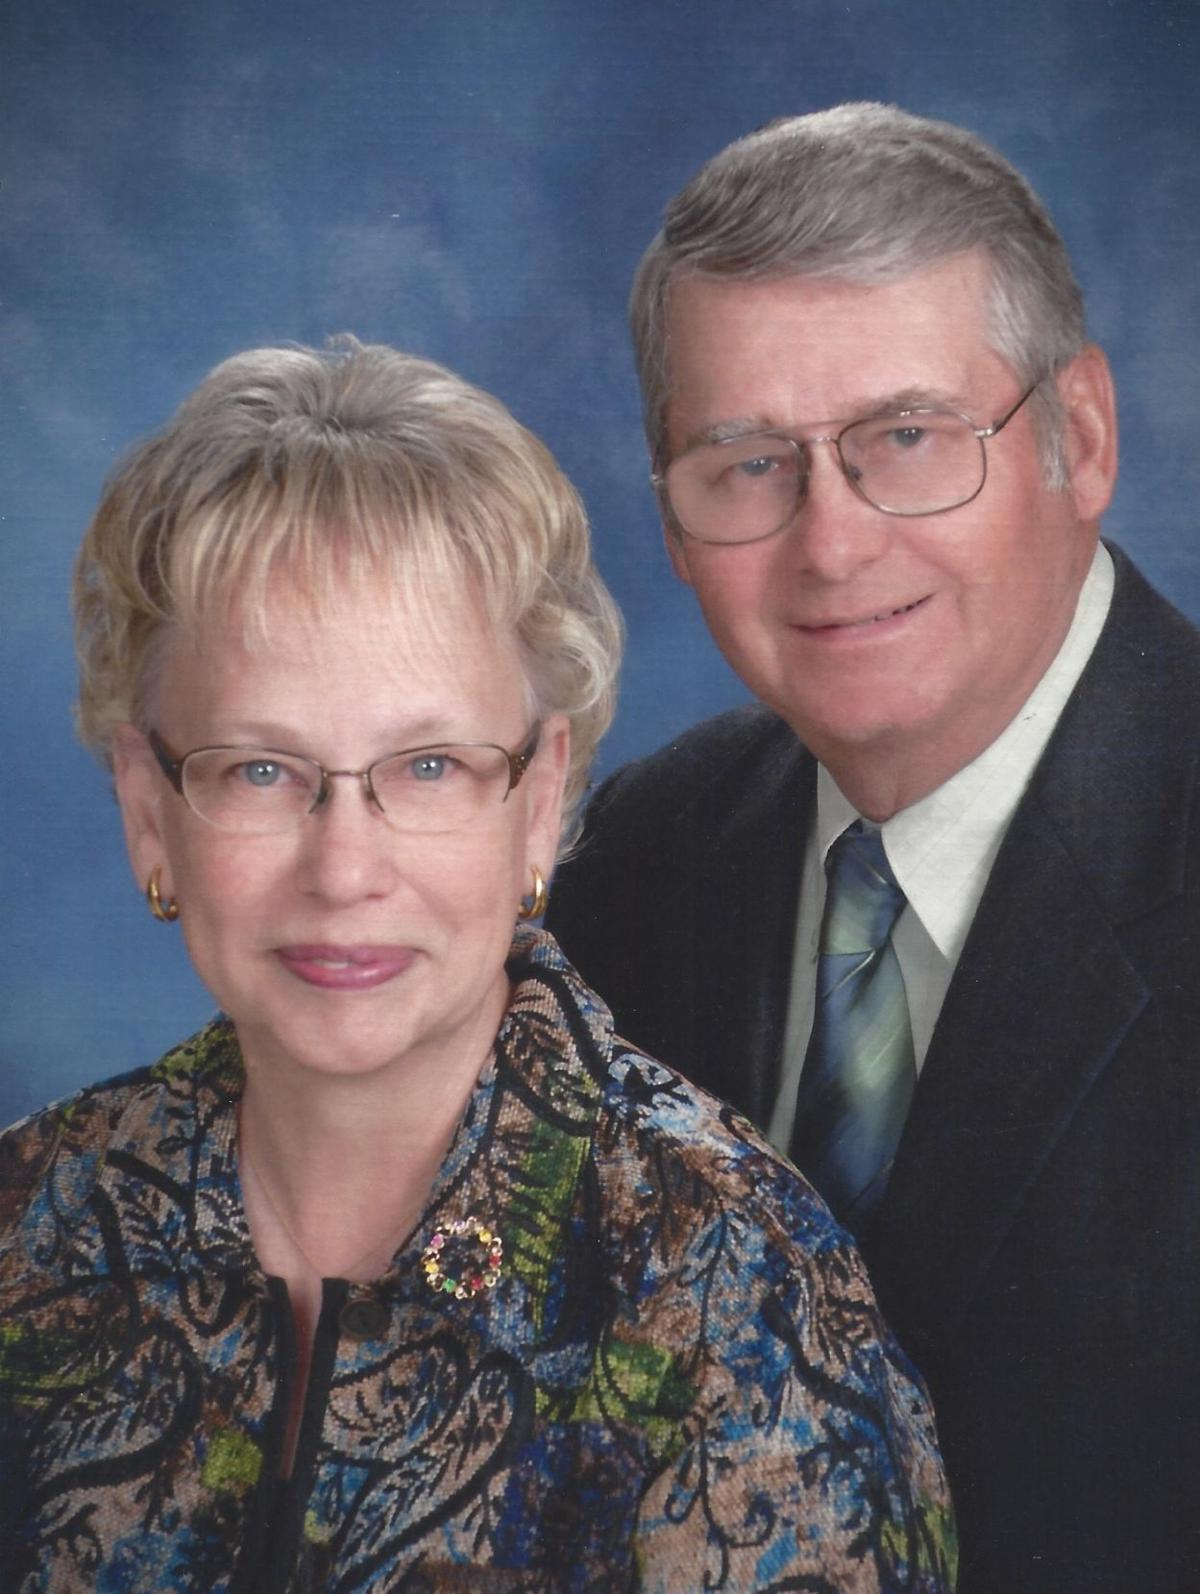 Renkens celebrating 50th wedding anniversary